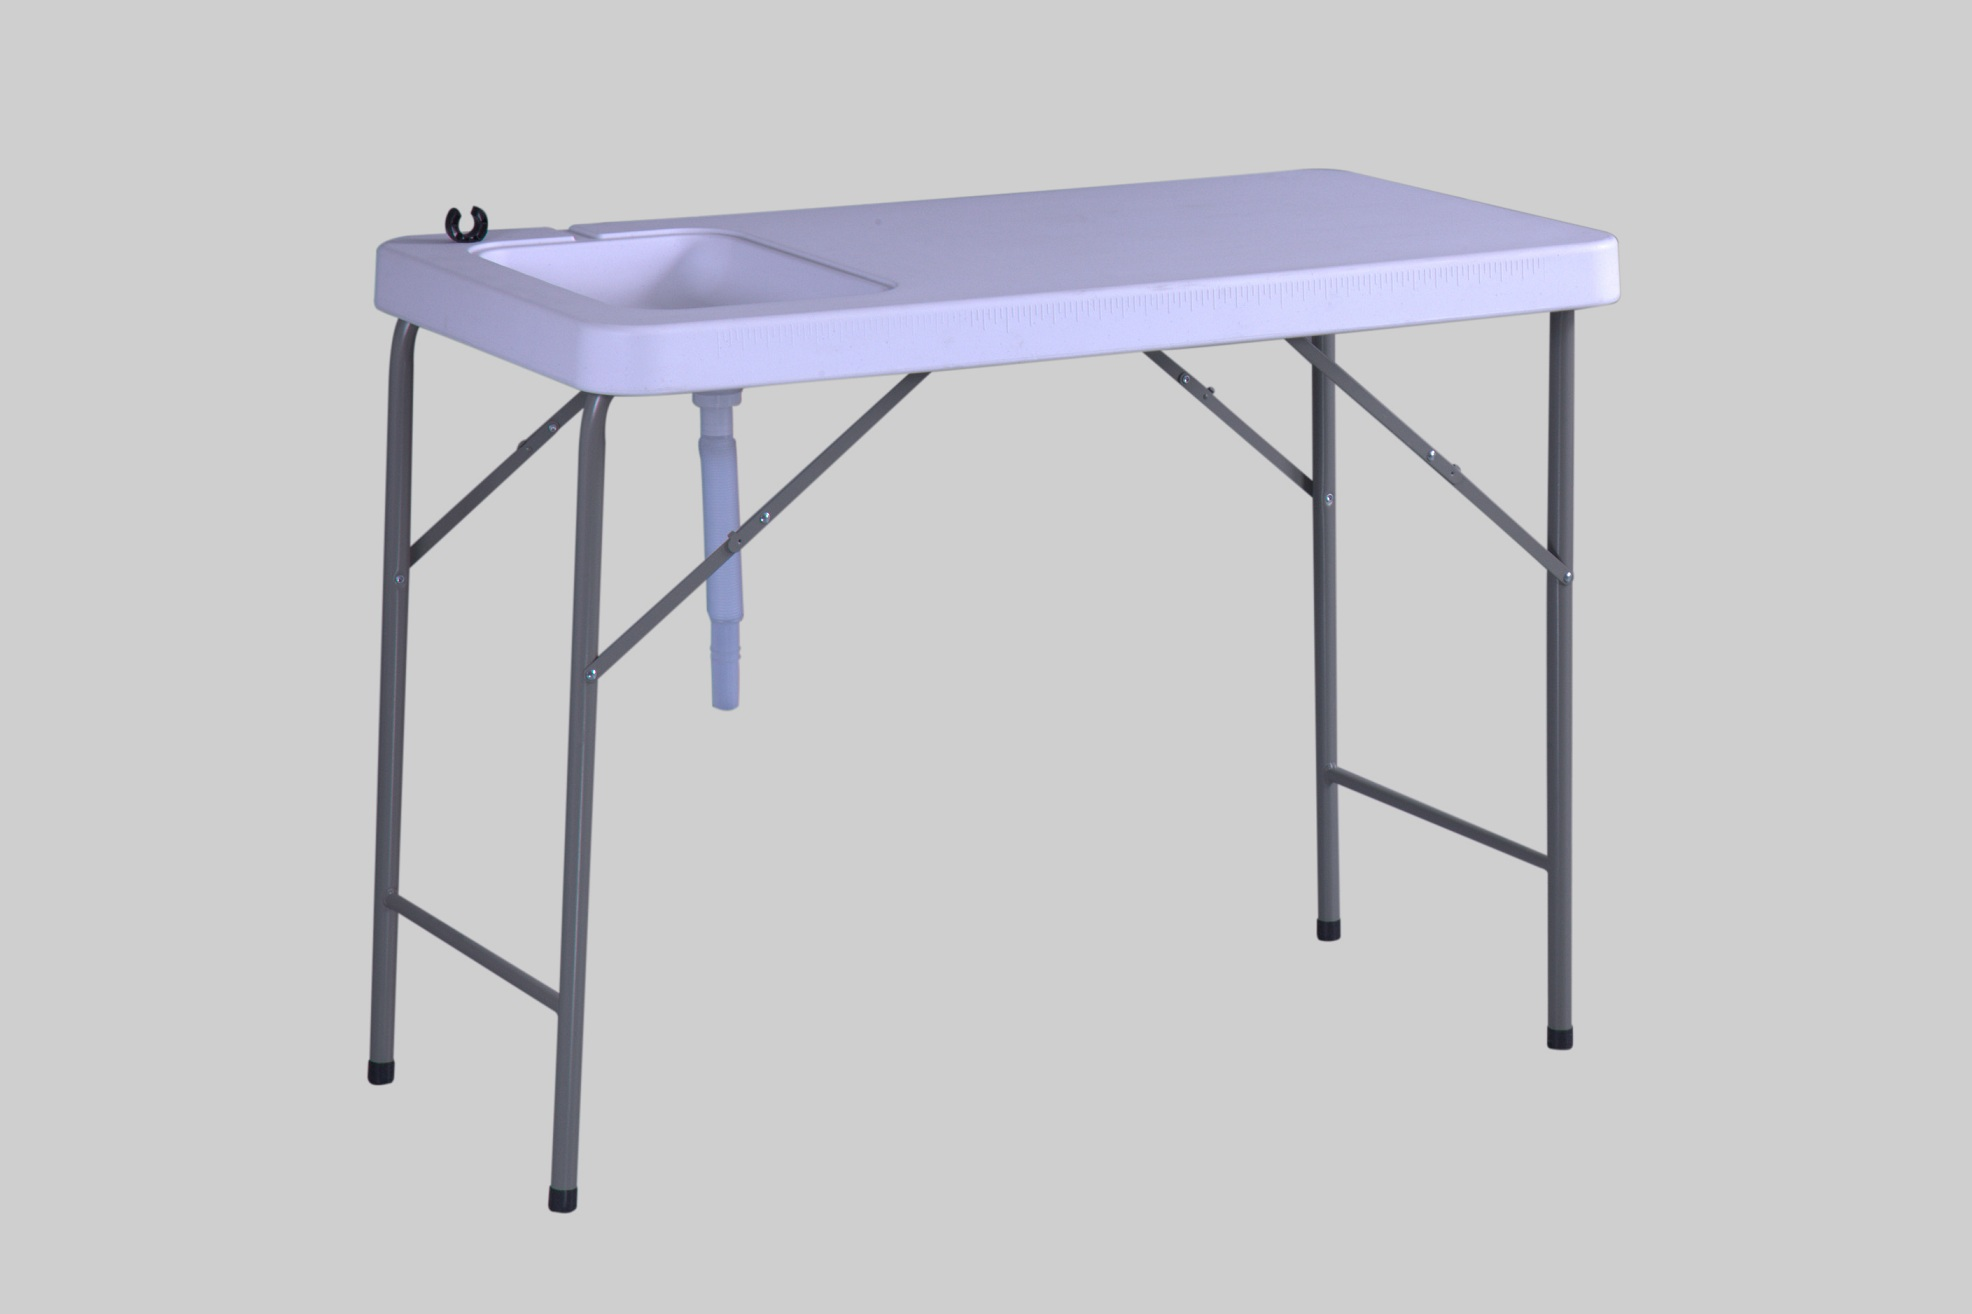 Outdoor Camping Table